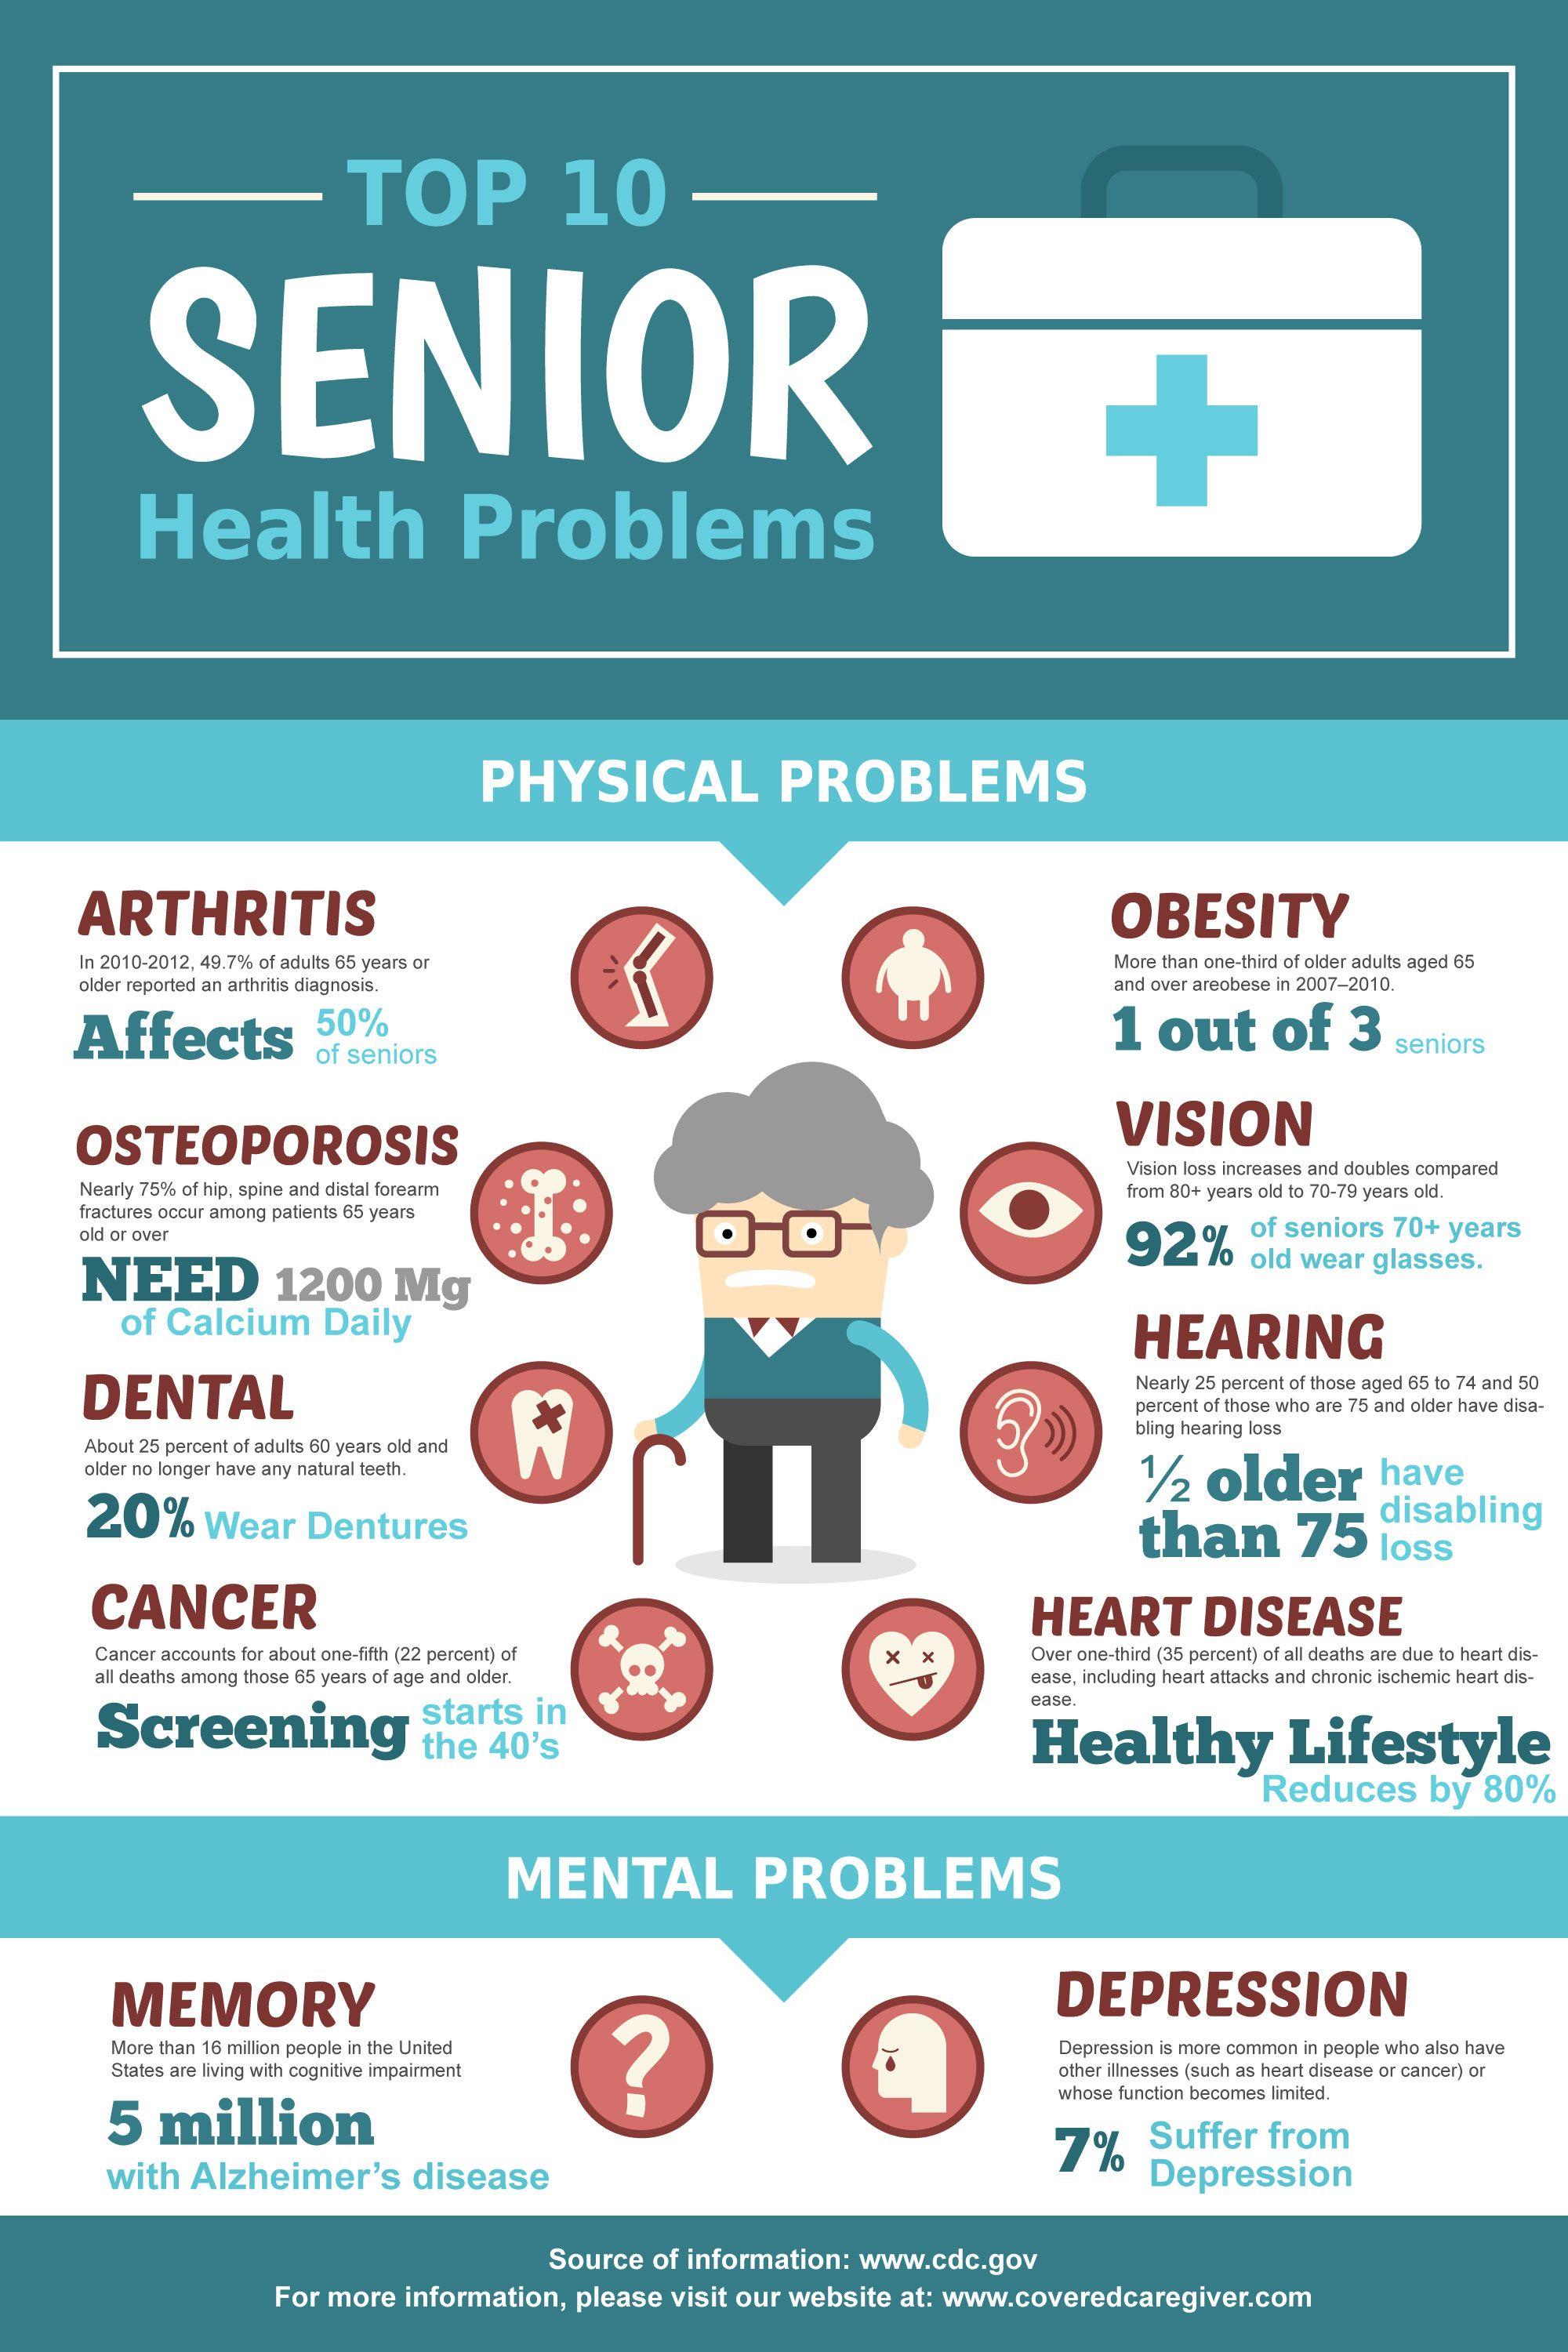 Top 10 Health Problems Seniors Face That You Might Not